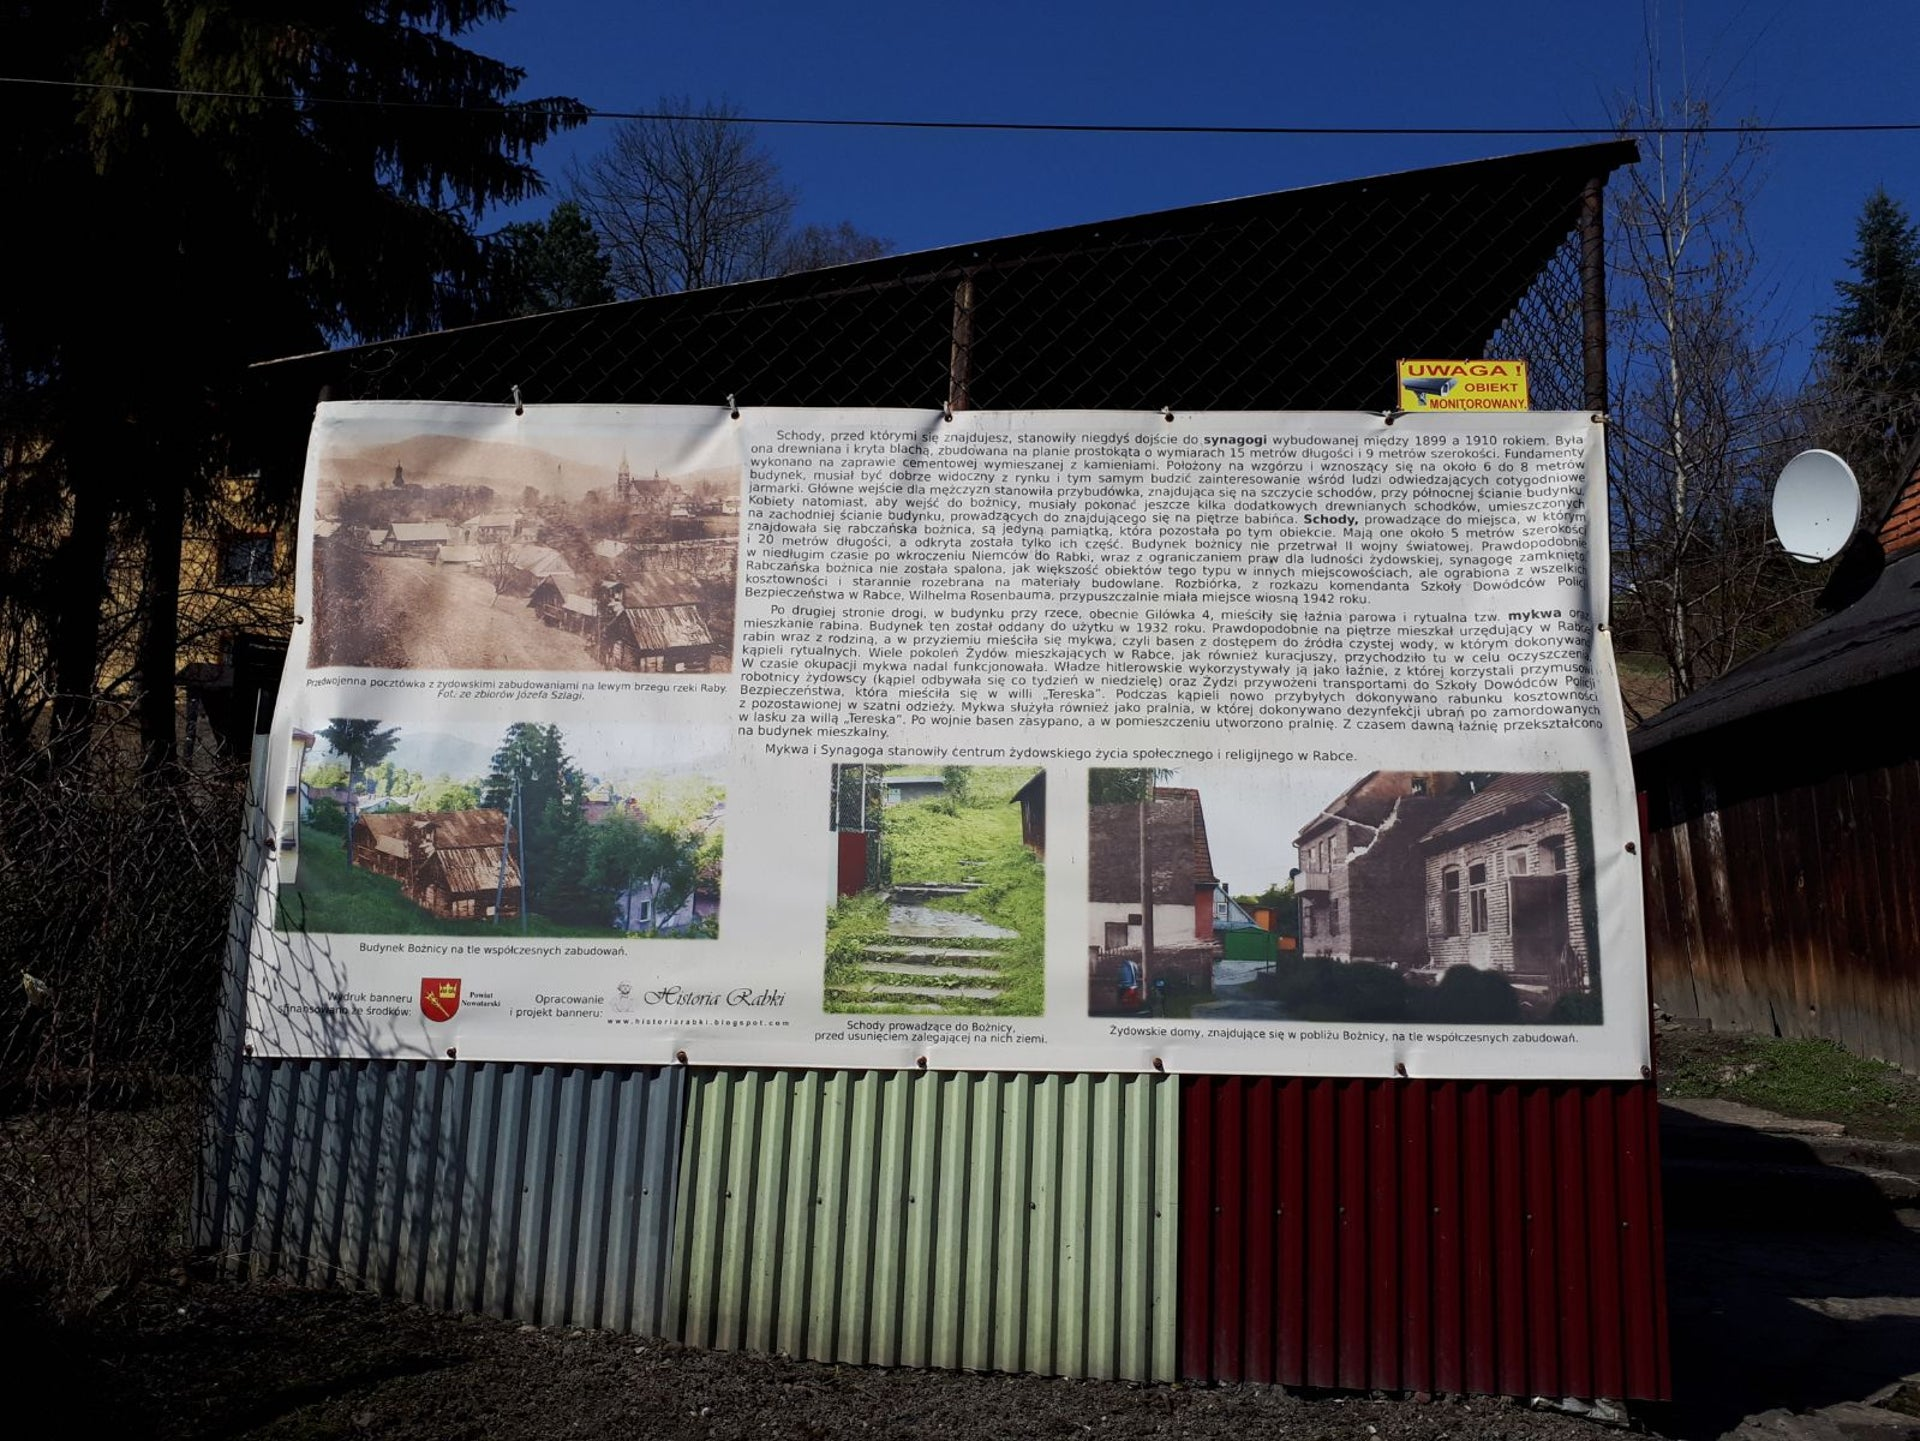 Narcyz Listowski's sign near the old synagogue steps, explaining the significance of the site in the town of Rabka.